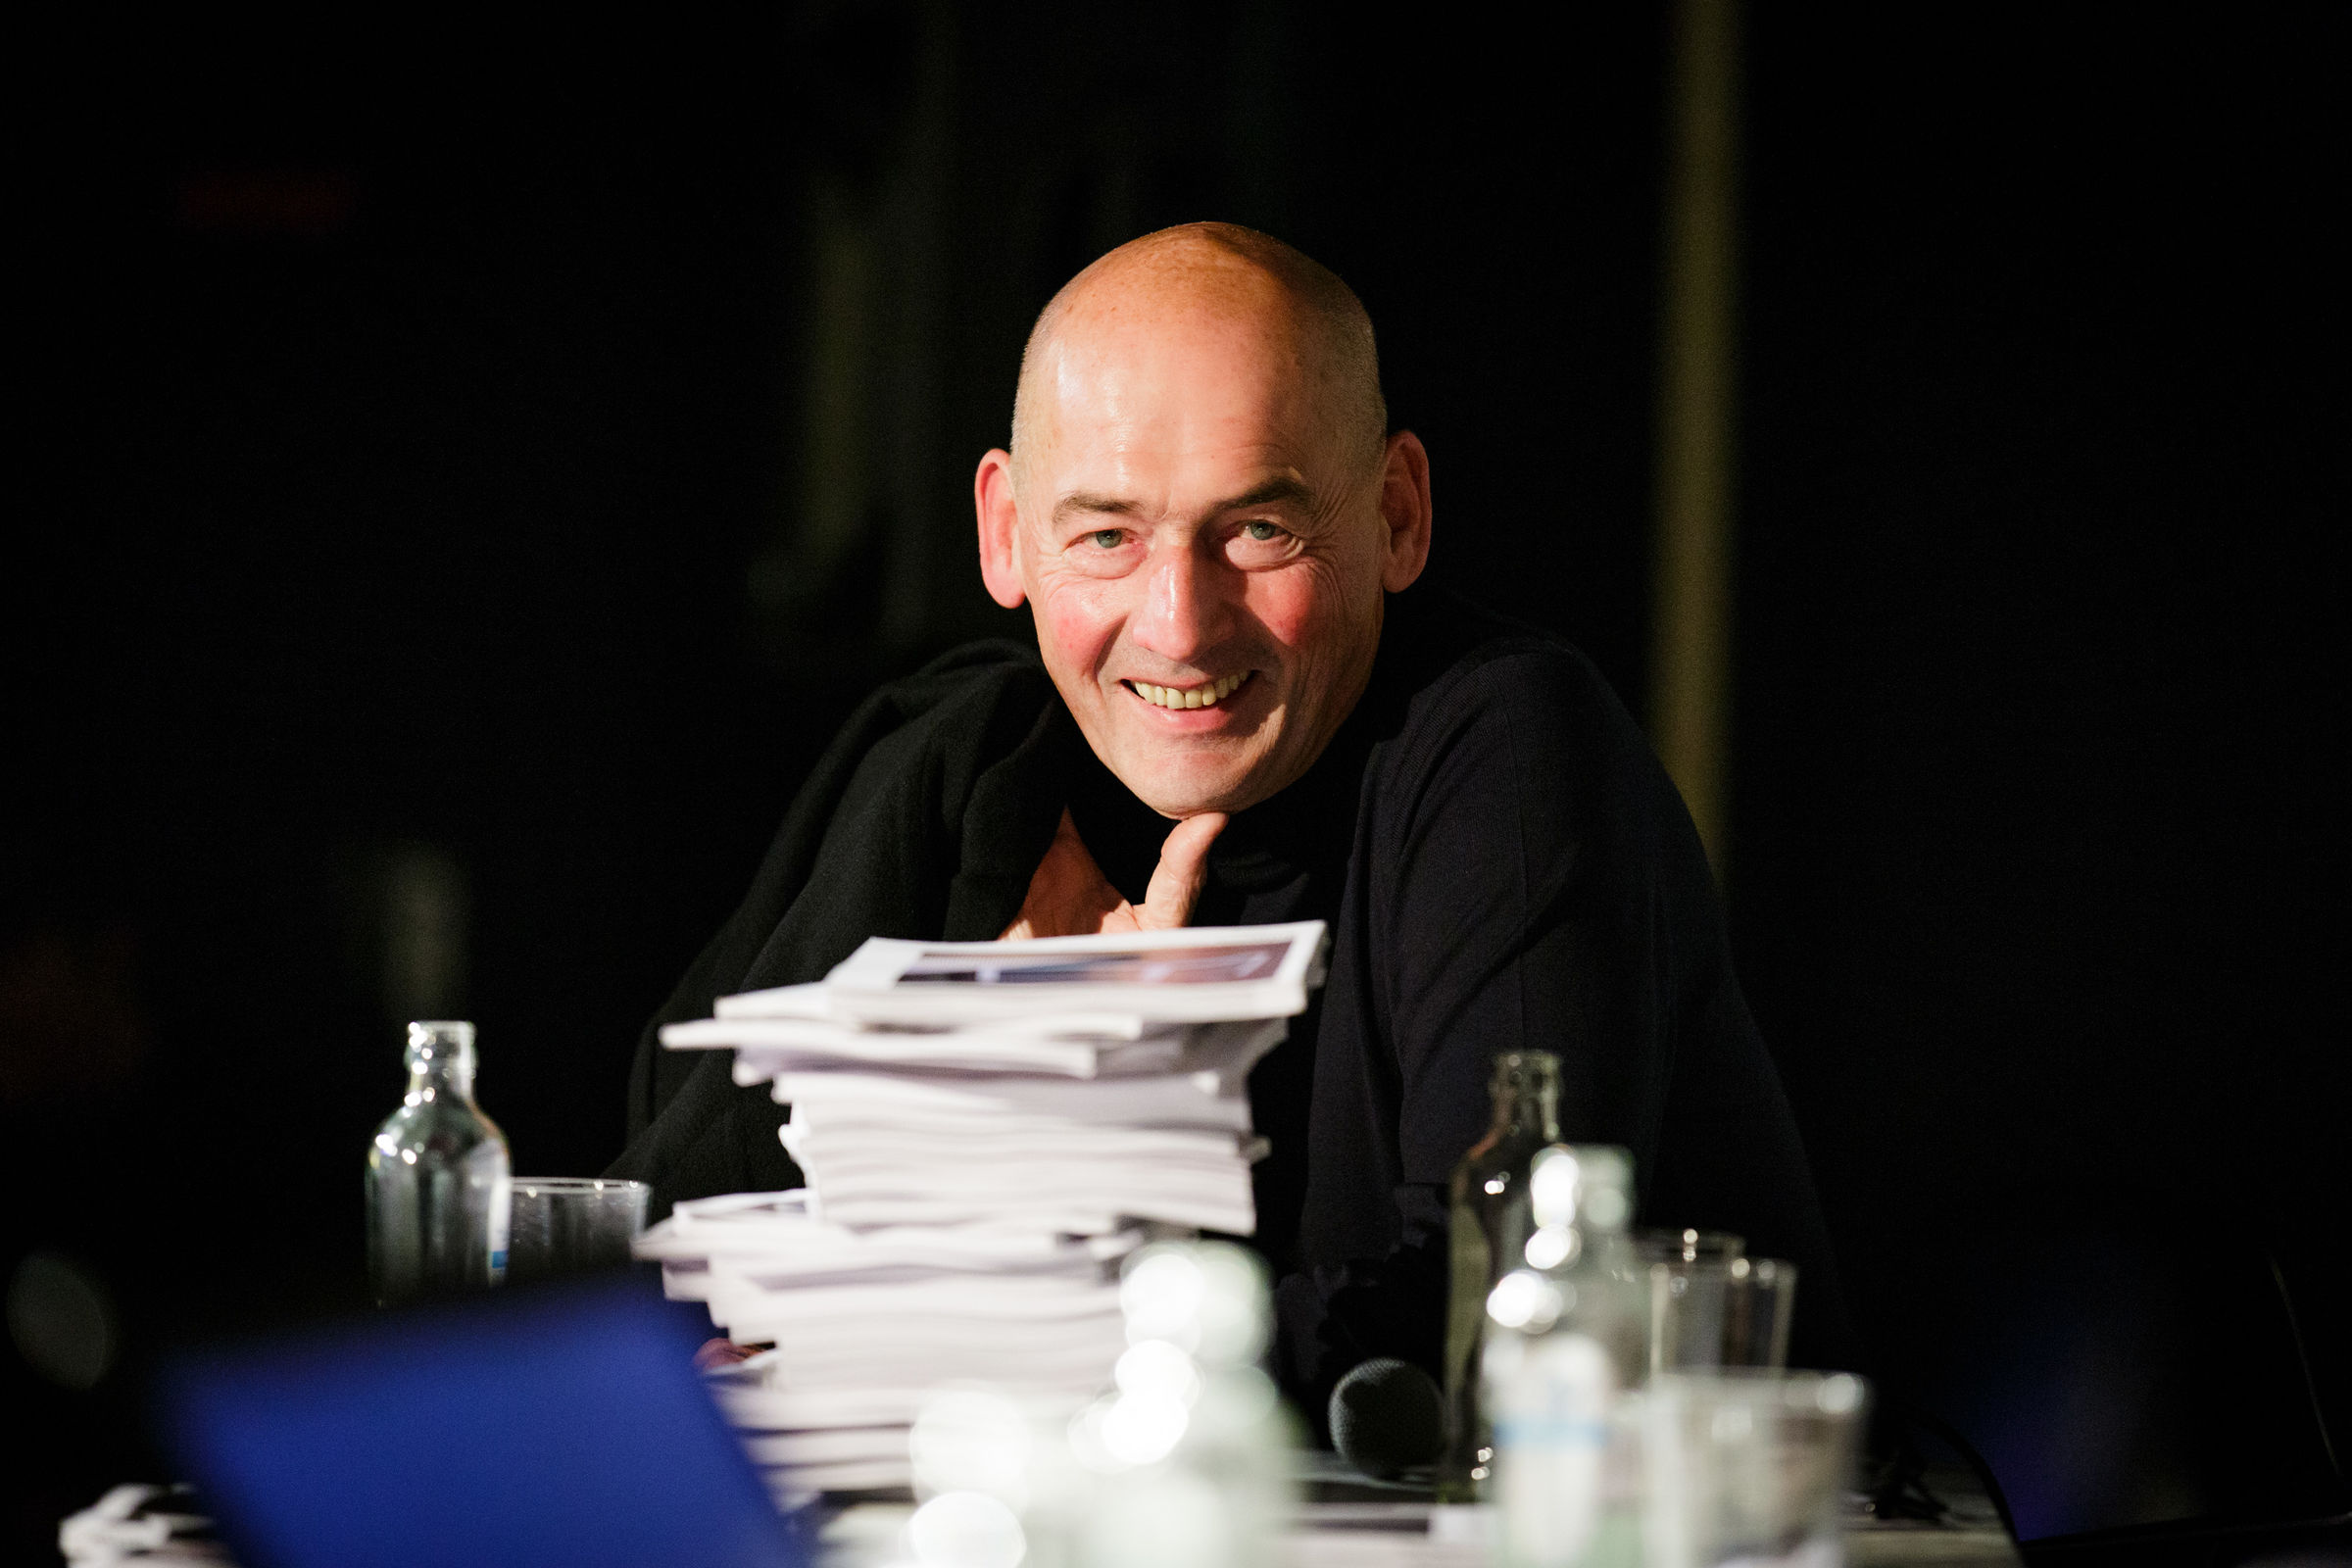 Rem Koolhaas and AMO will exhibit Countryside, The Future